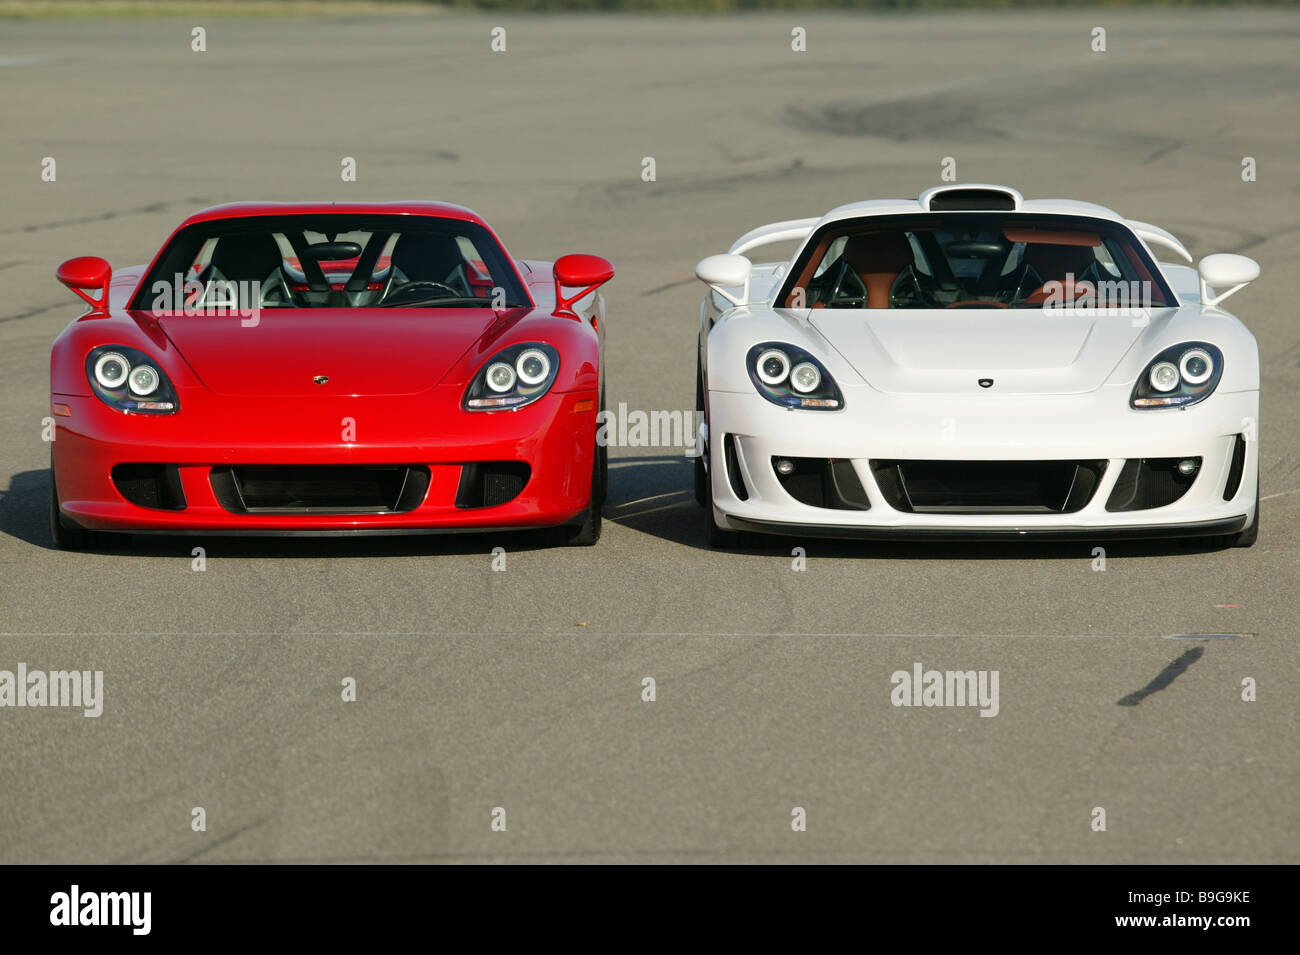 Porsche Gemballa Mirage White Red Front View Series Vehicles Car Sport Cars  Sport Cars Side By Side Symbol Spin Car Driving